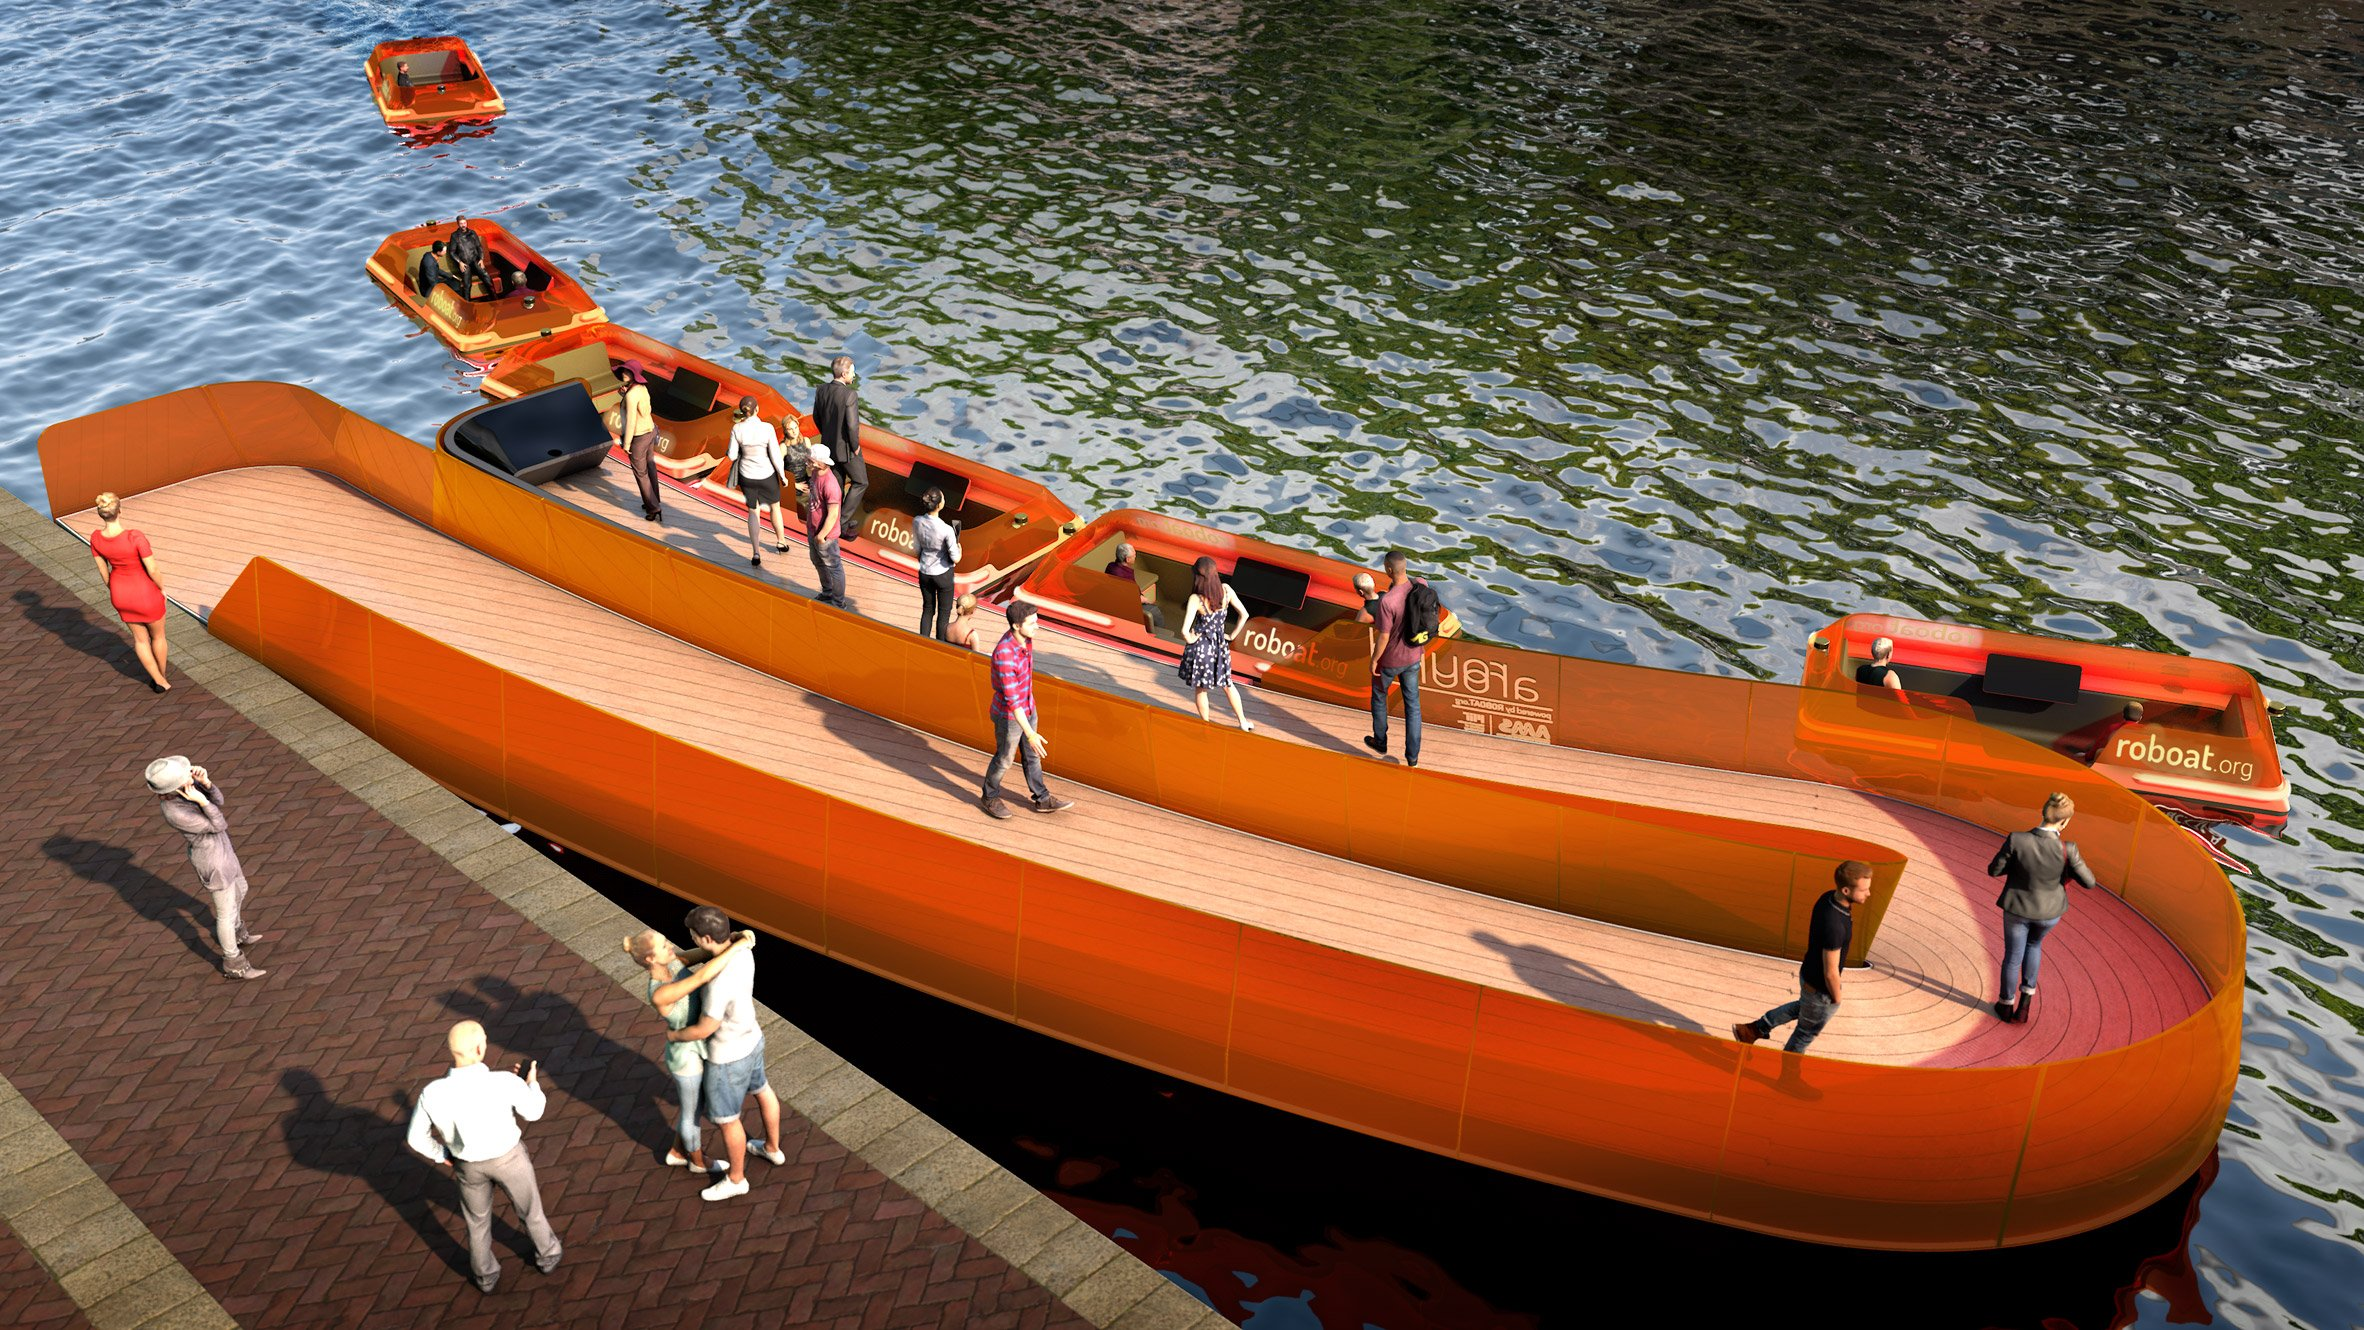 RoundAround Roboat bridge by Carlo Ratti and MIT Senseable City Lab